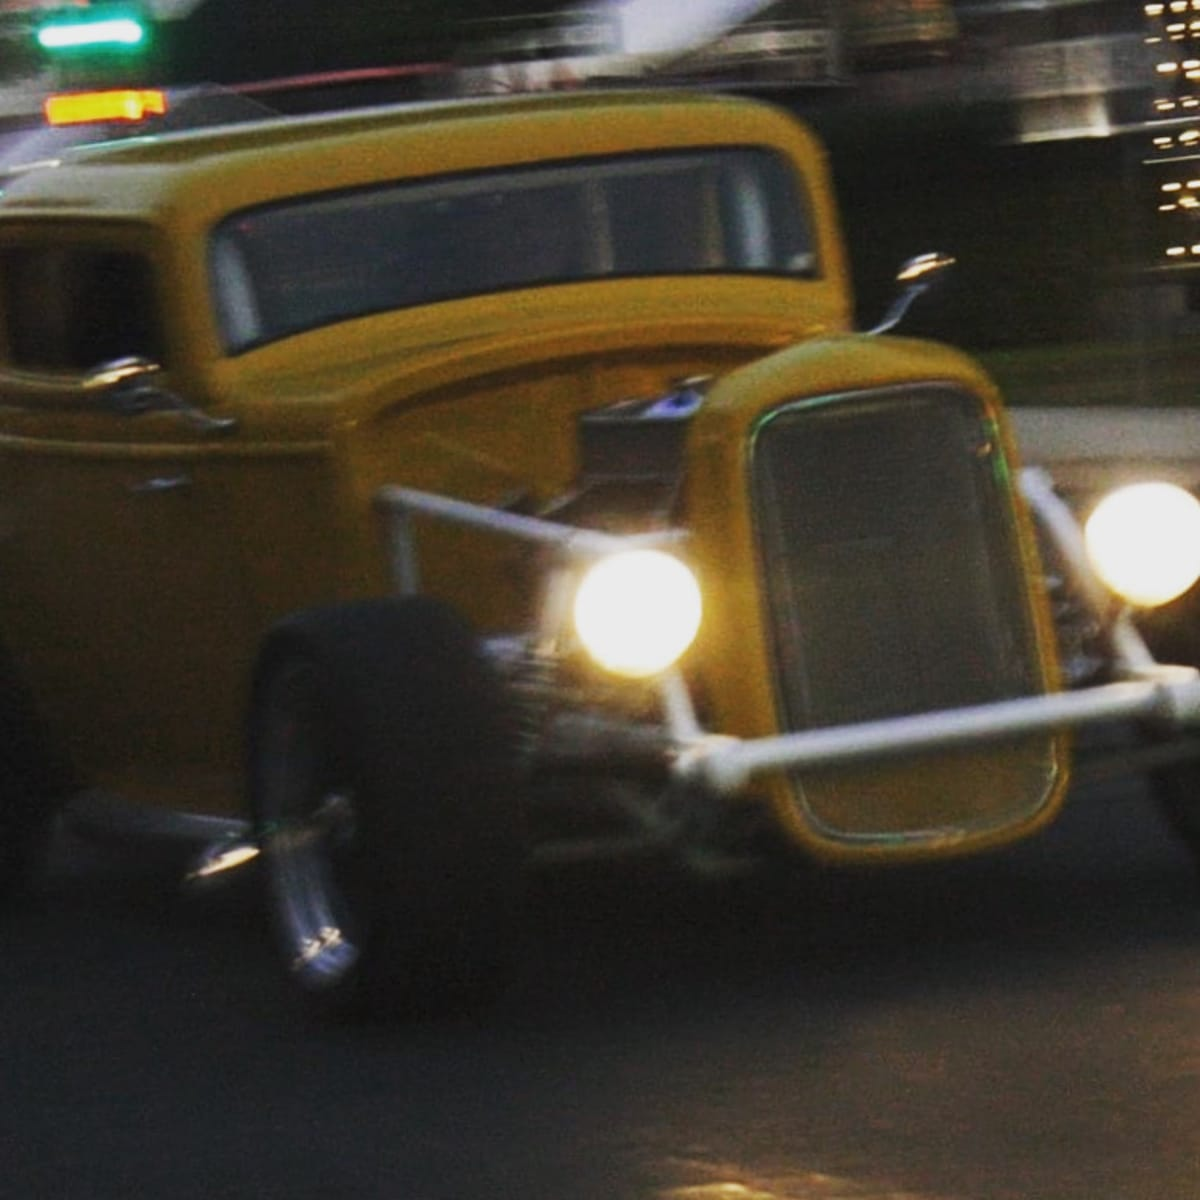 Dave's hot rod's exhaust doesn't mix well with camera lenses...